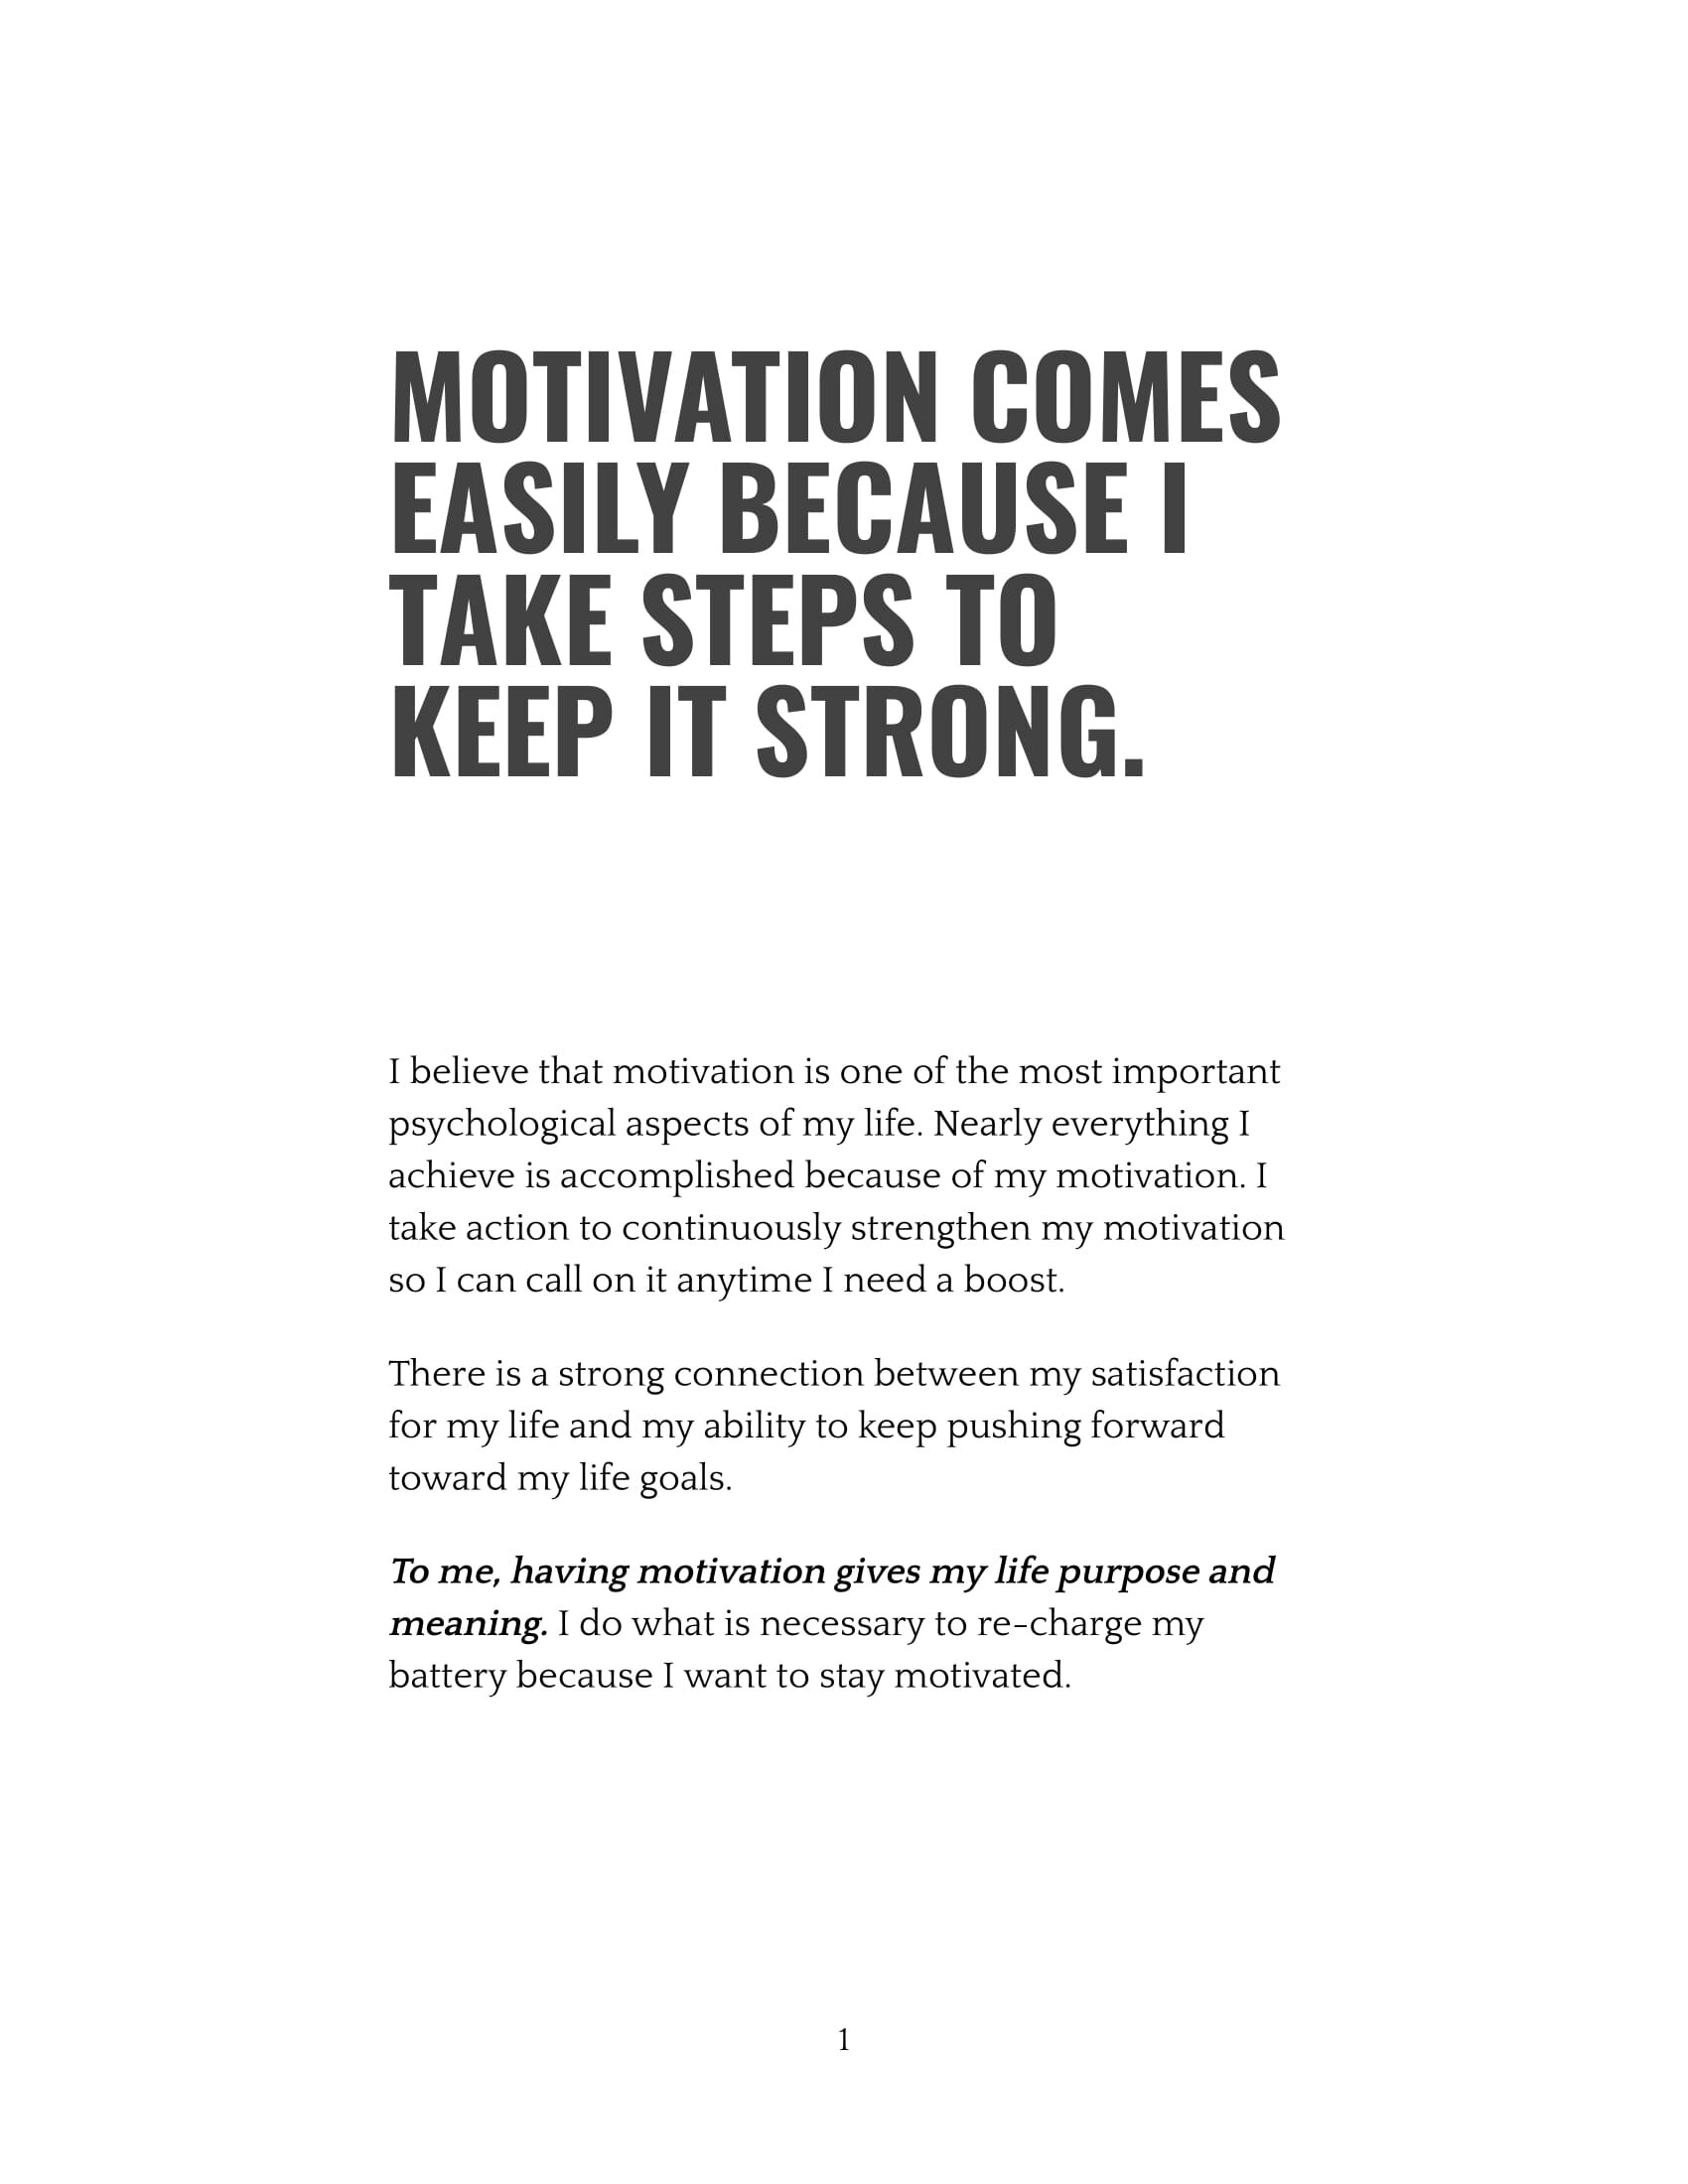 Motivation Comes Easily Because I Take Steps To Keep It Strong-1.jpg